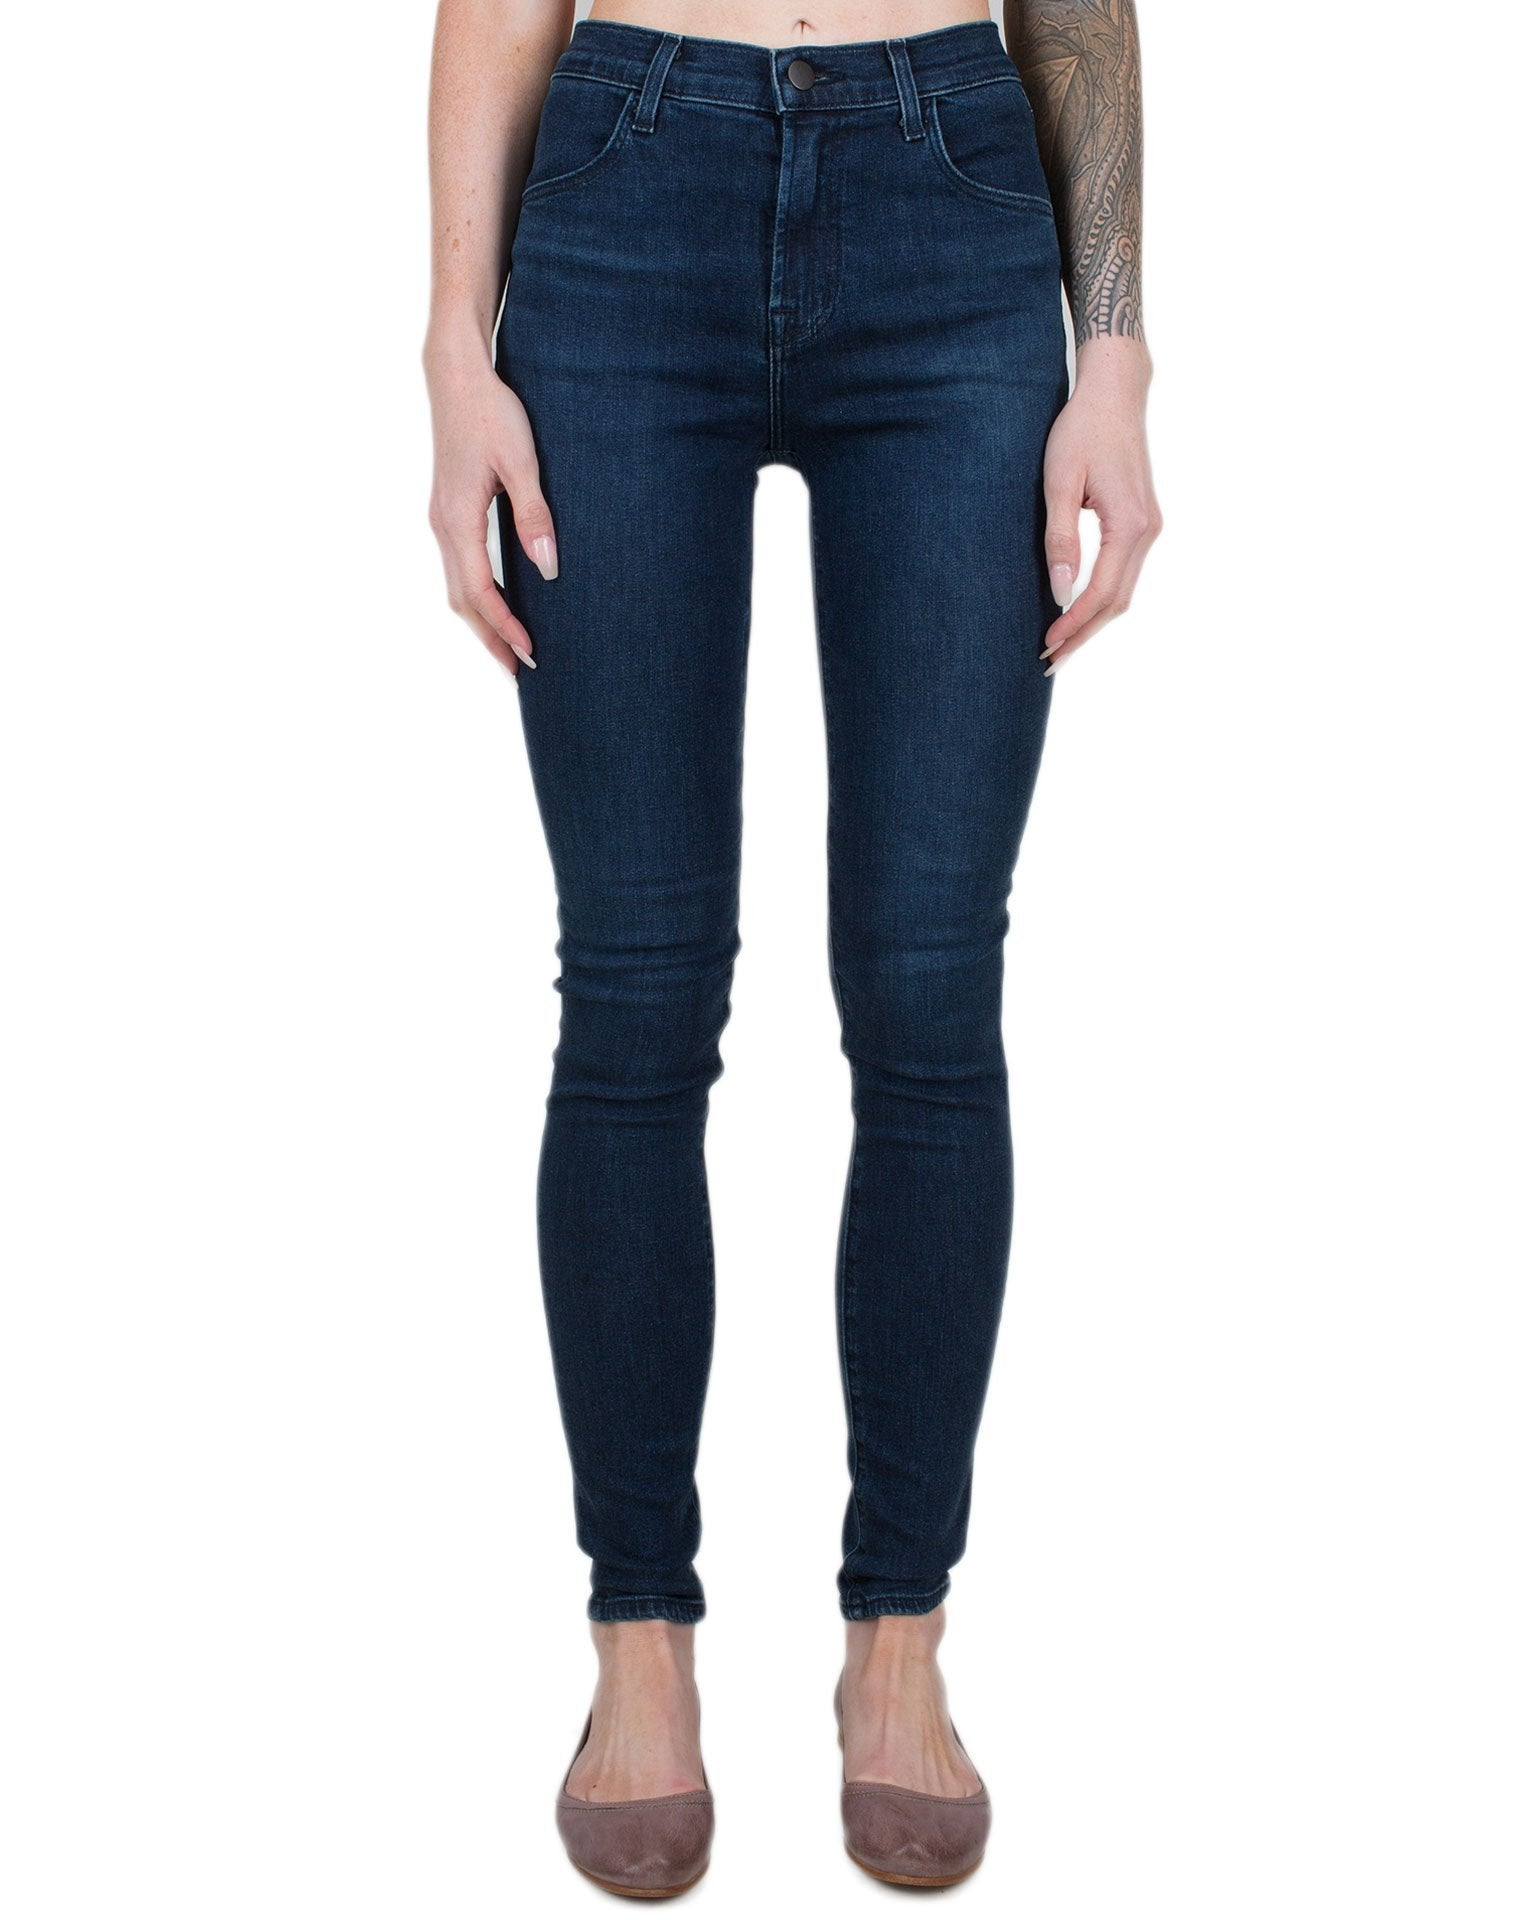 J Brand Denim Commit / 25 Maria High Rise Skinny in Commit